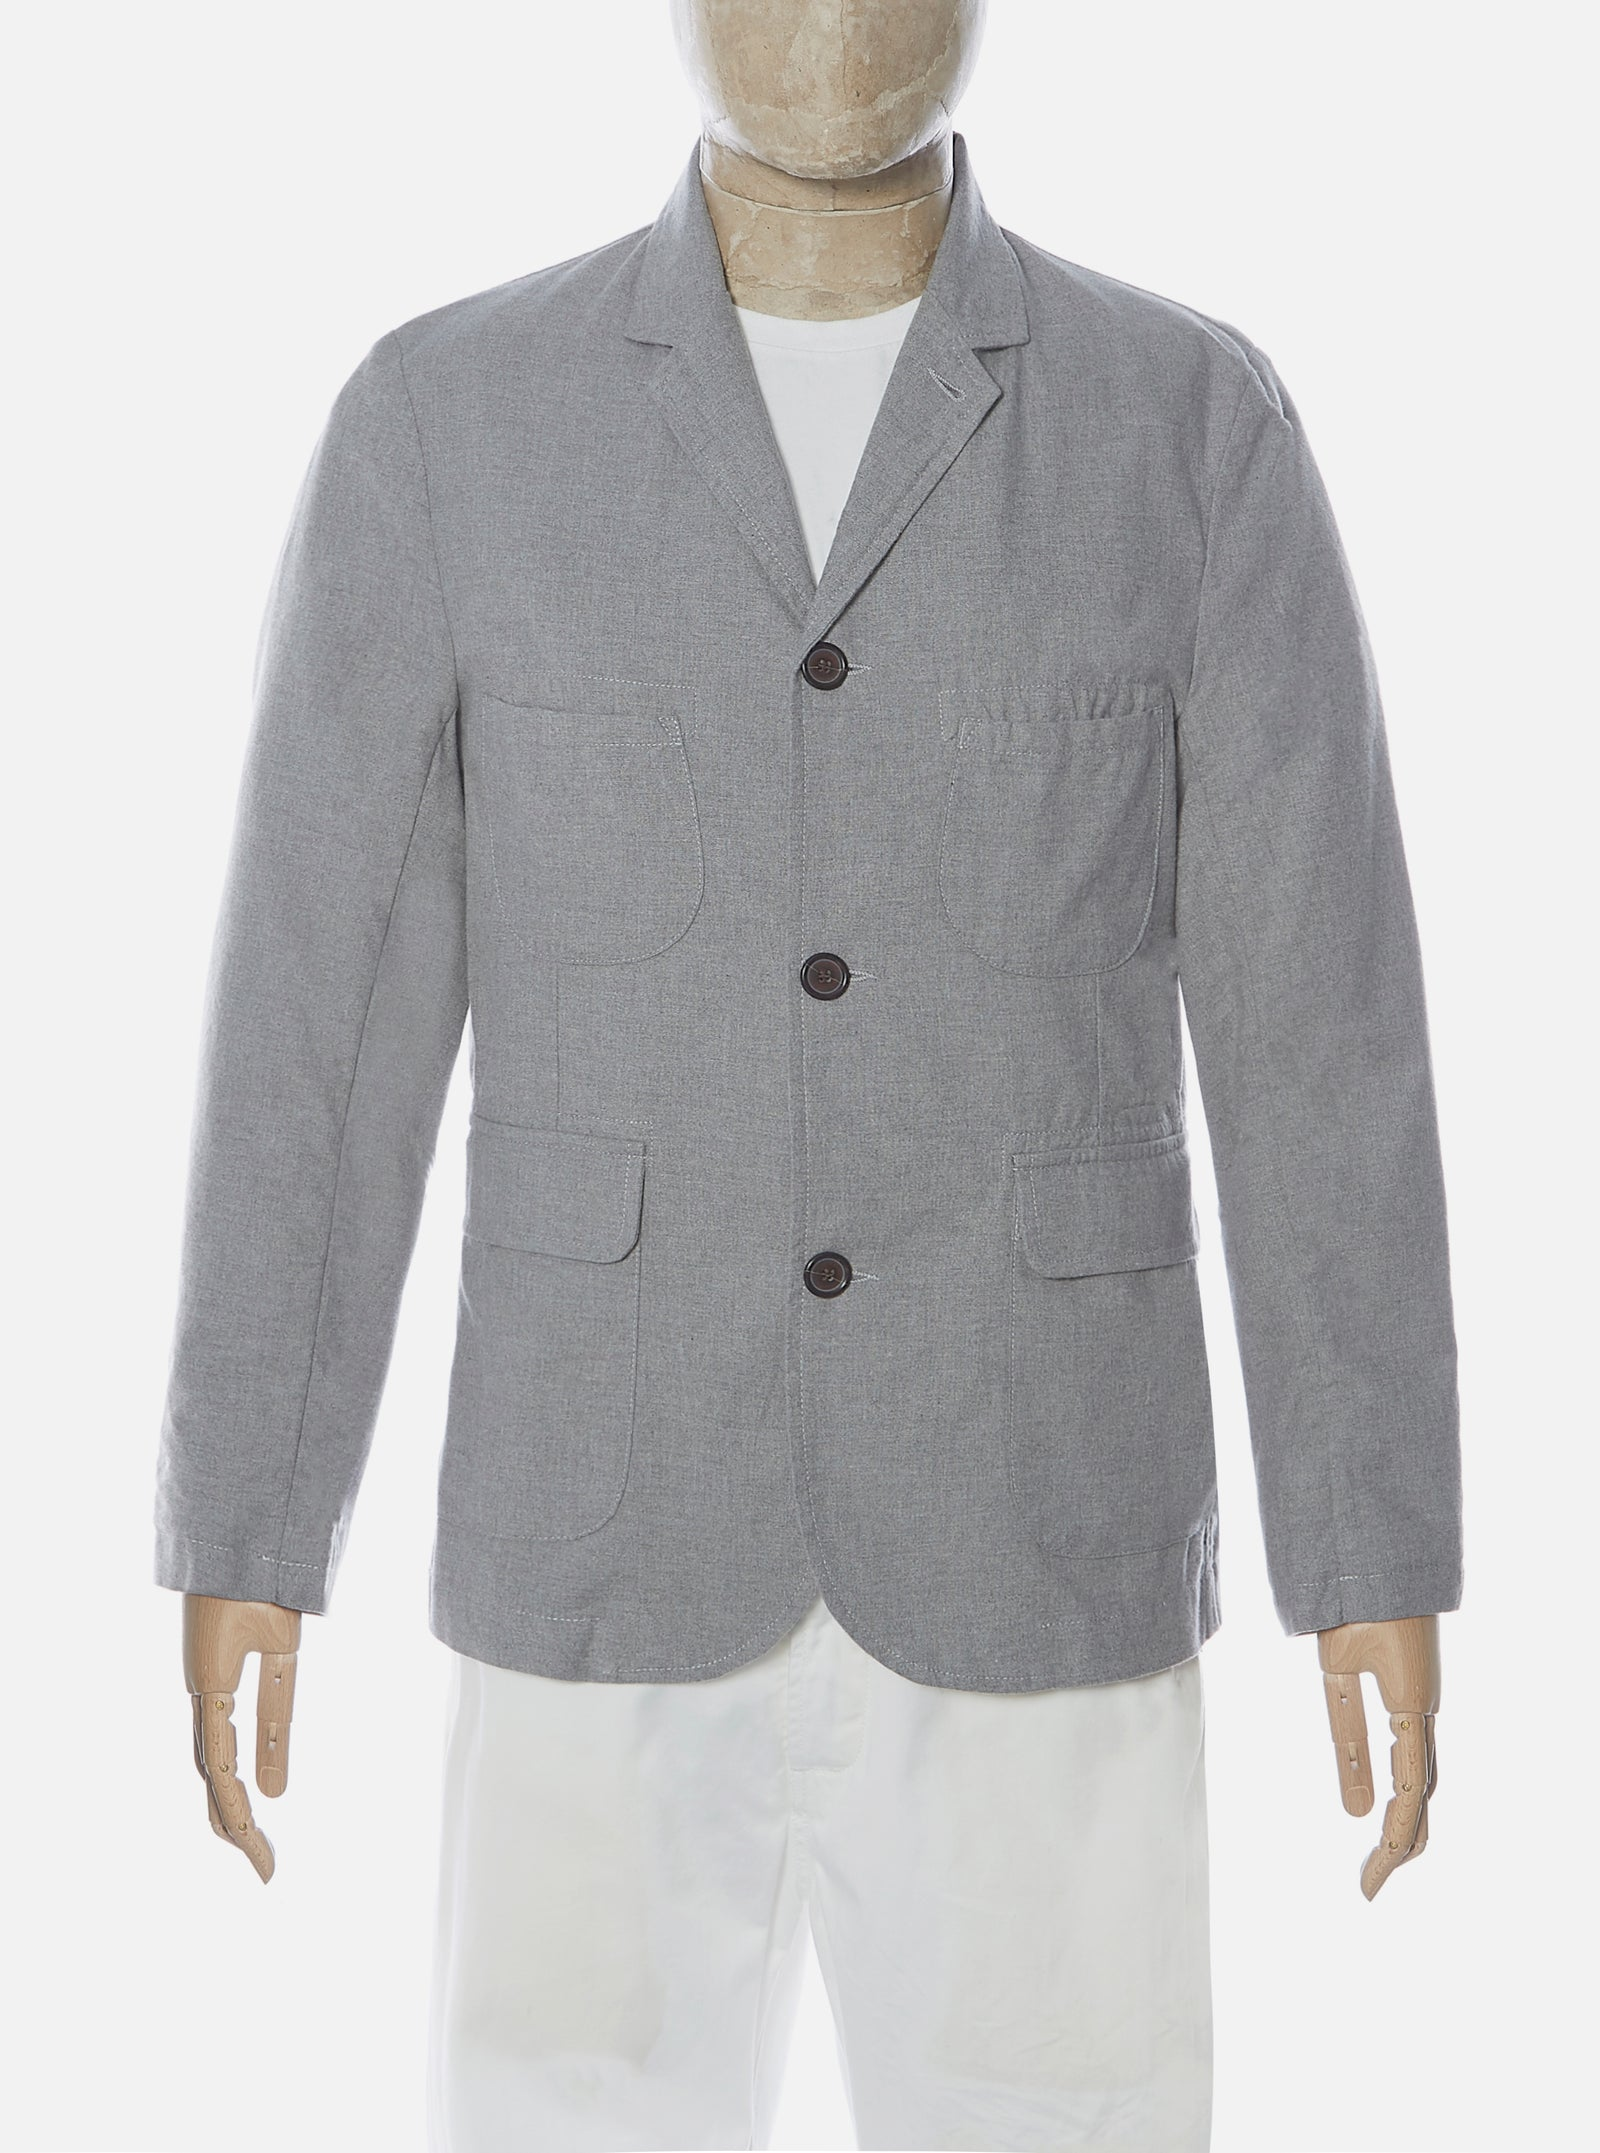 Universal Works Barra Jacket in Grey Cotton Suiting II